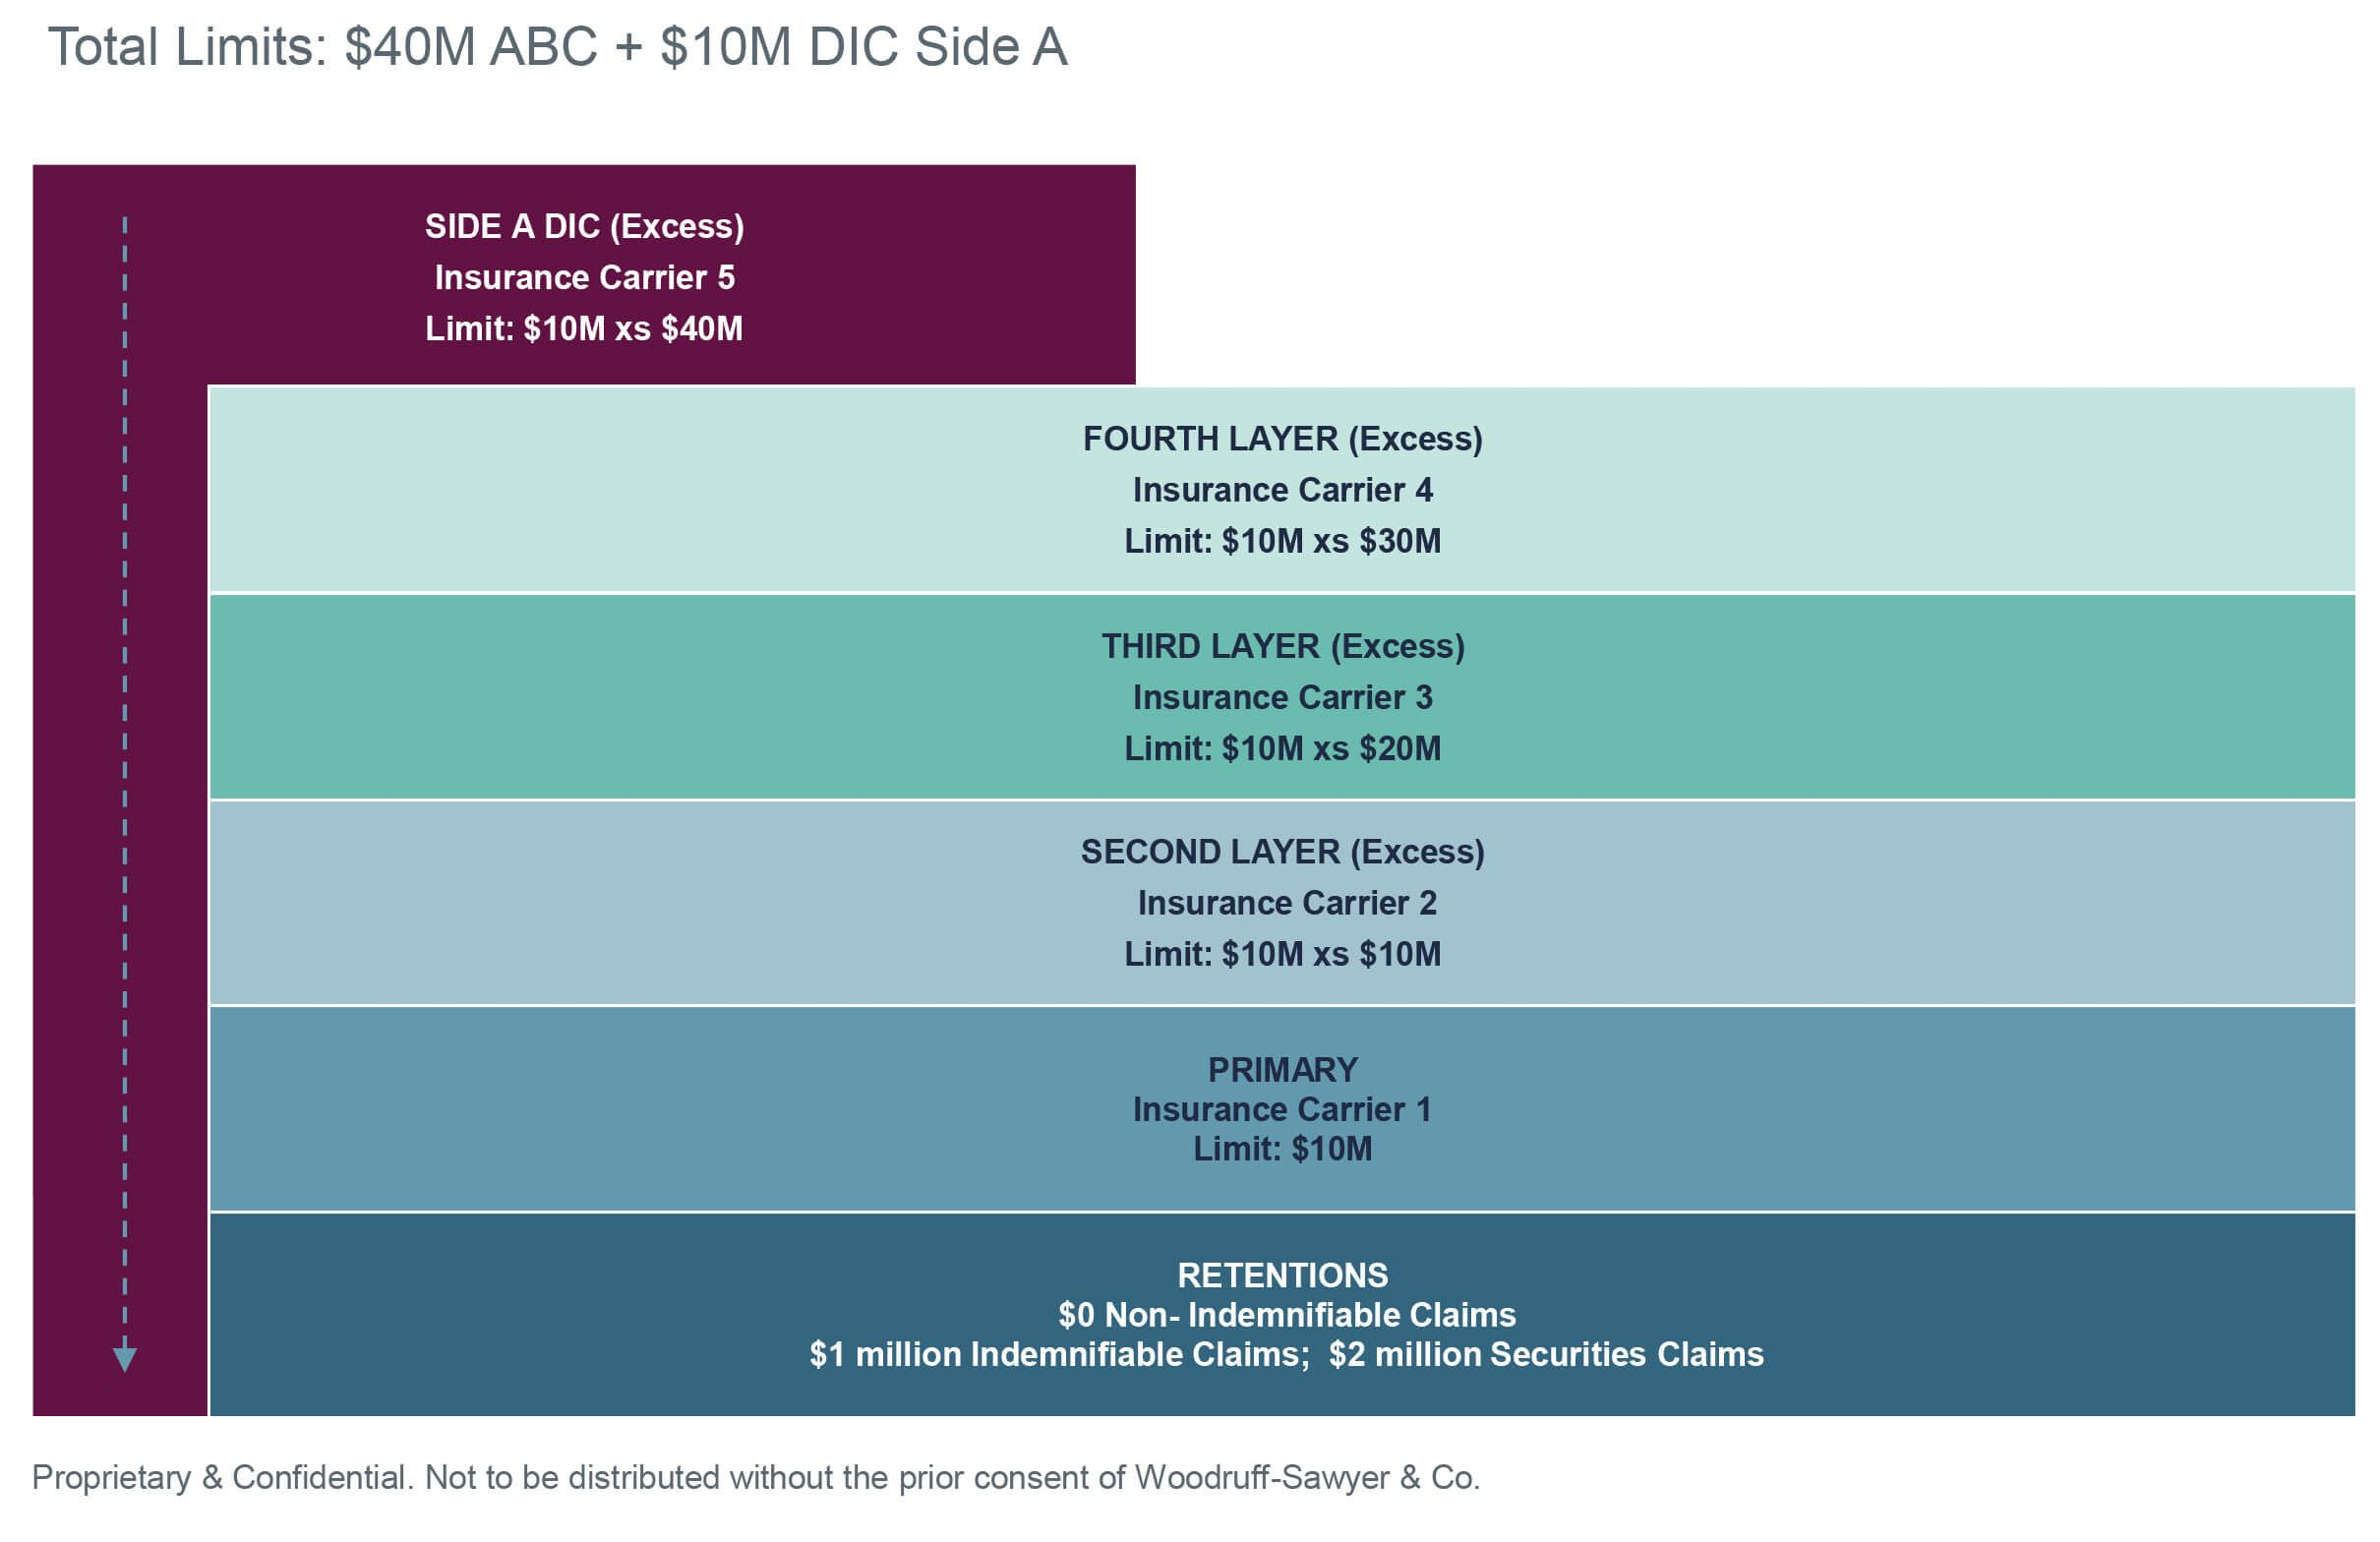 Sample D&O insurance program, total limits $40M ABC + $10M DIC Side A